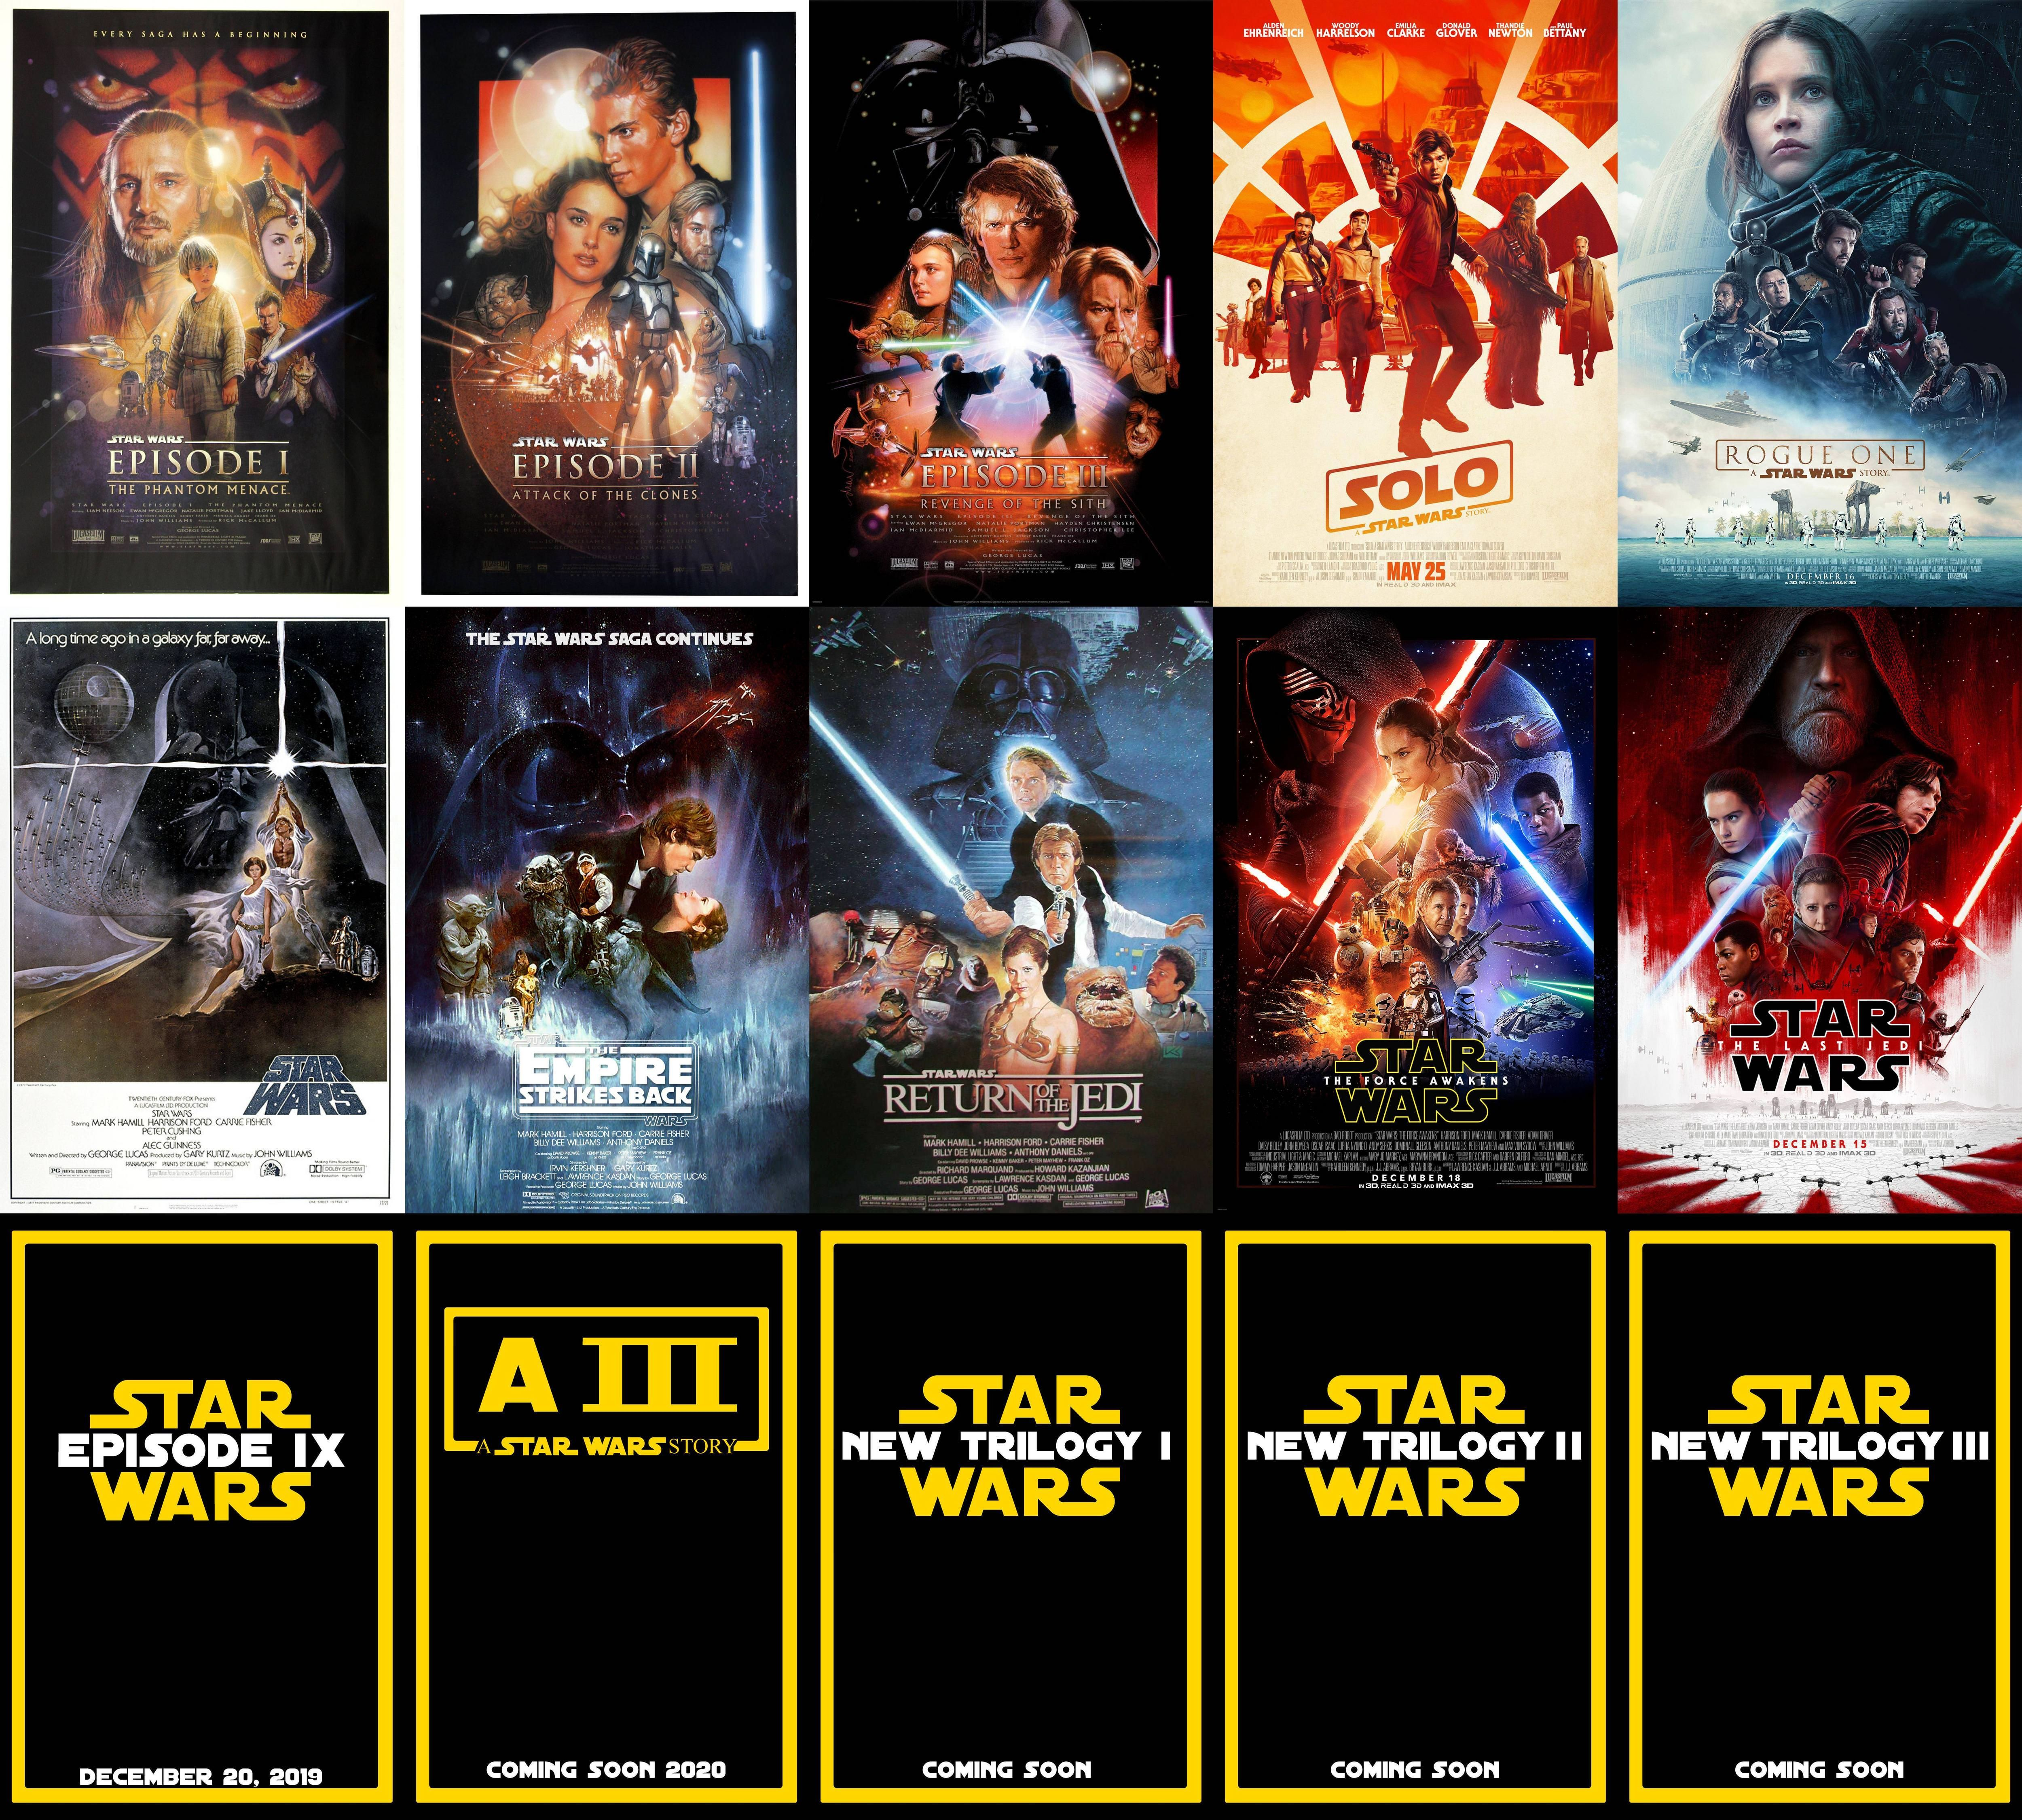 Star Wars 2 Epic Space Opera Film Series Poster Galaxy Trilogy Photo Cinema